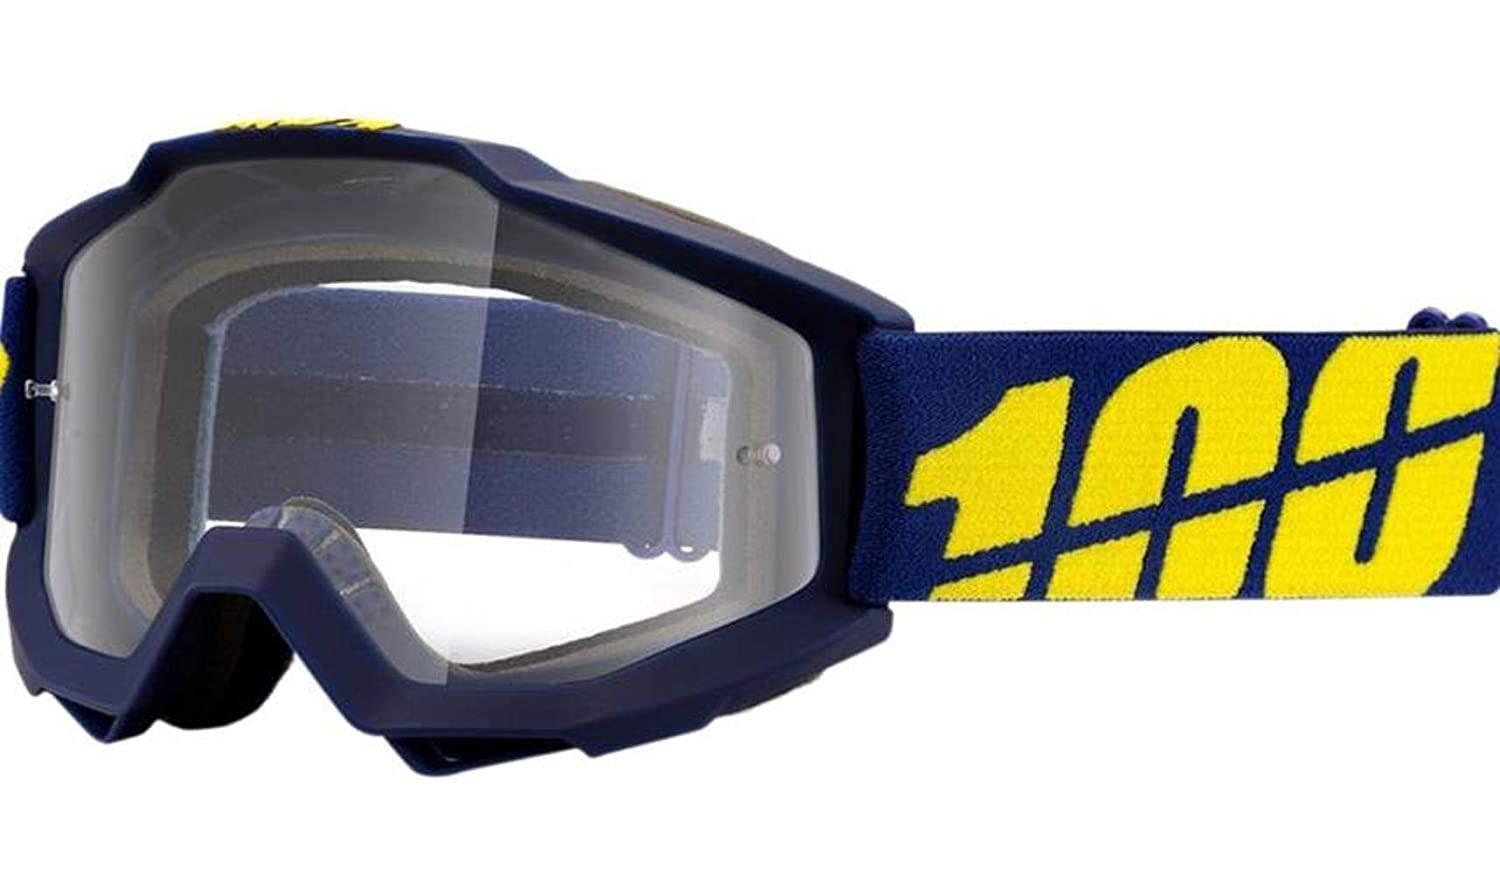 54402c39d1a Amazon.com  100% Accuri Men s Off-Road Dirt Bike Motorcycle Goggles Eyewear  - Blue Yellow Clear   One Size  Automotive